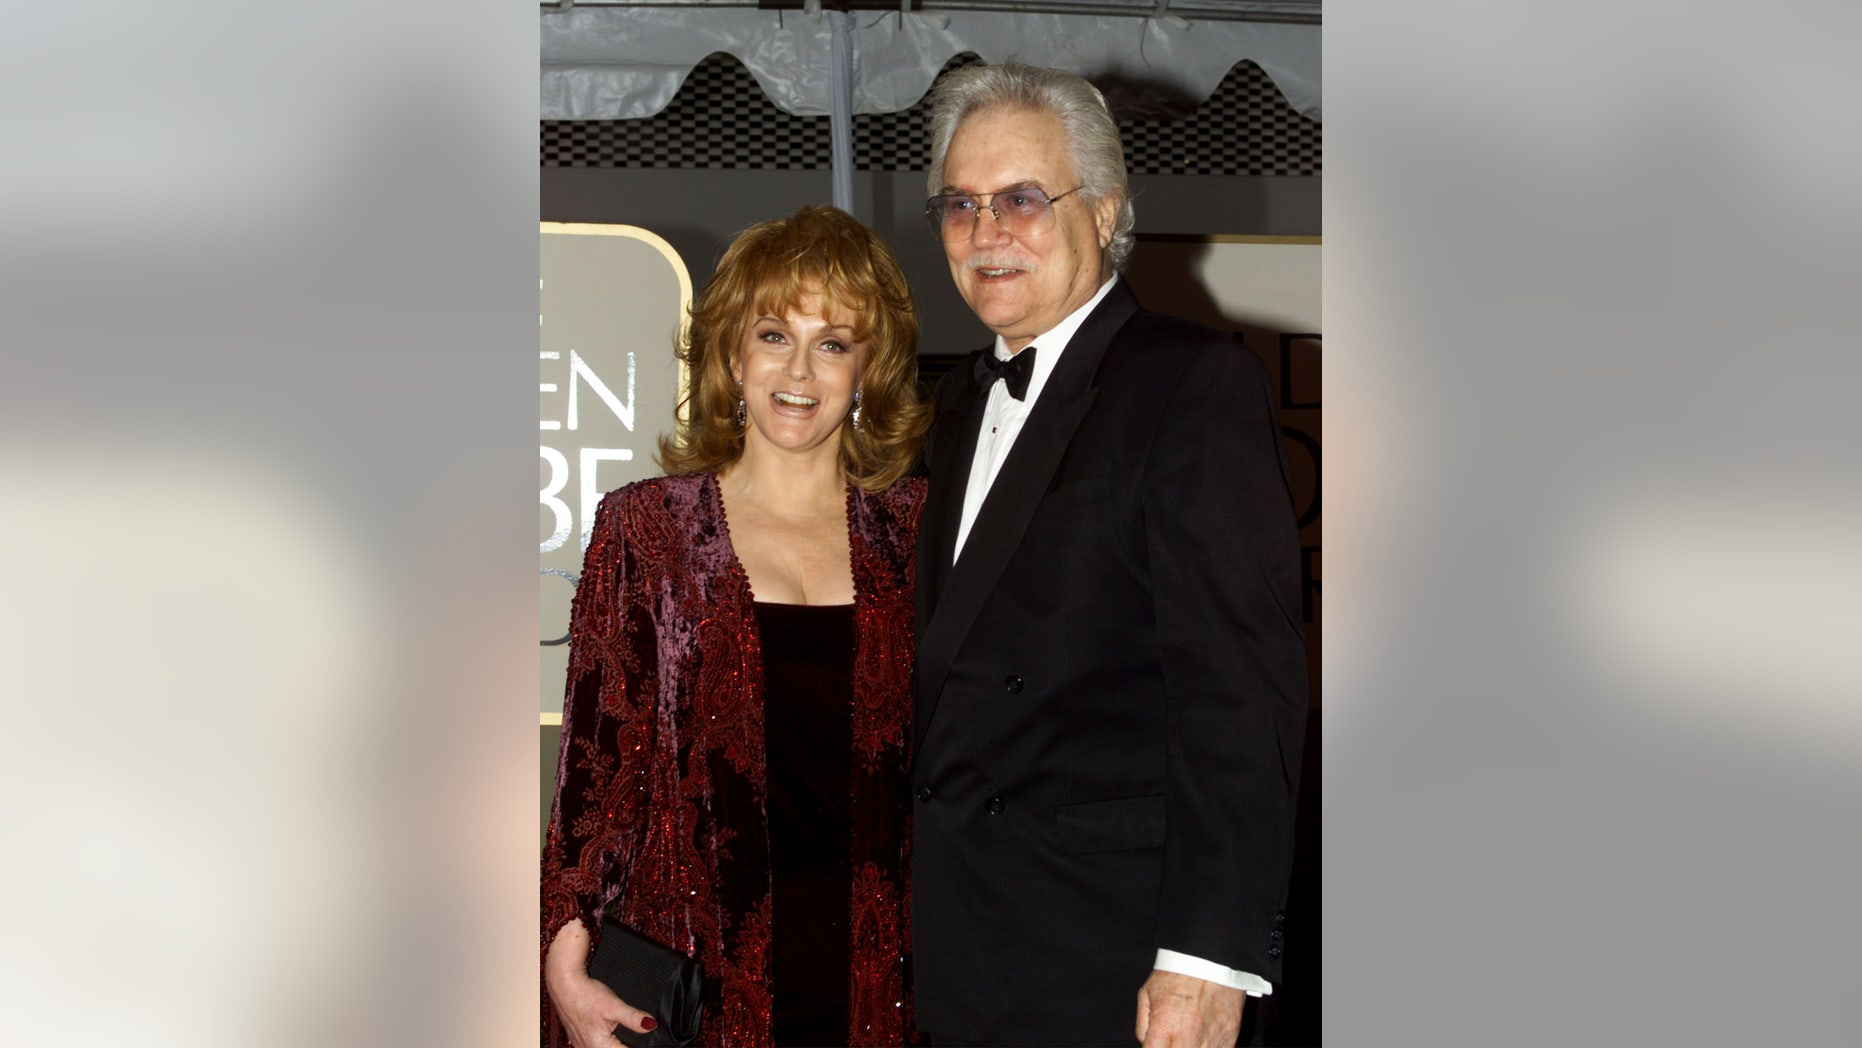 Actress Ann Margaret and her husband Roger Smith arrive at the 56th annual Golden Globe Awards ceremony in Beverly Hills, January 24, 1999.